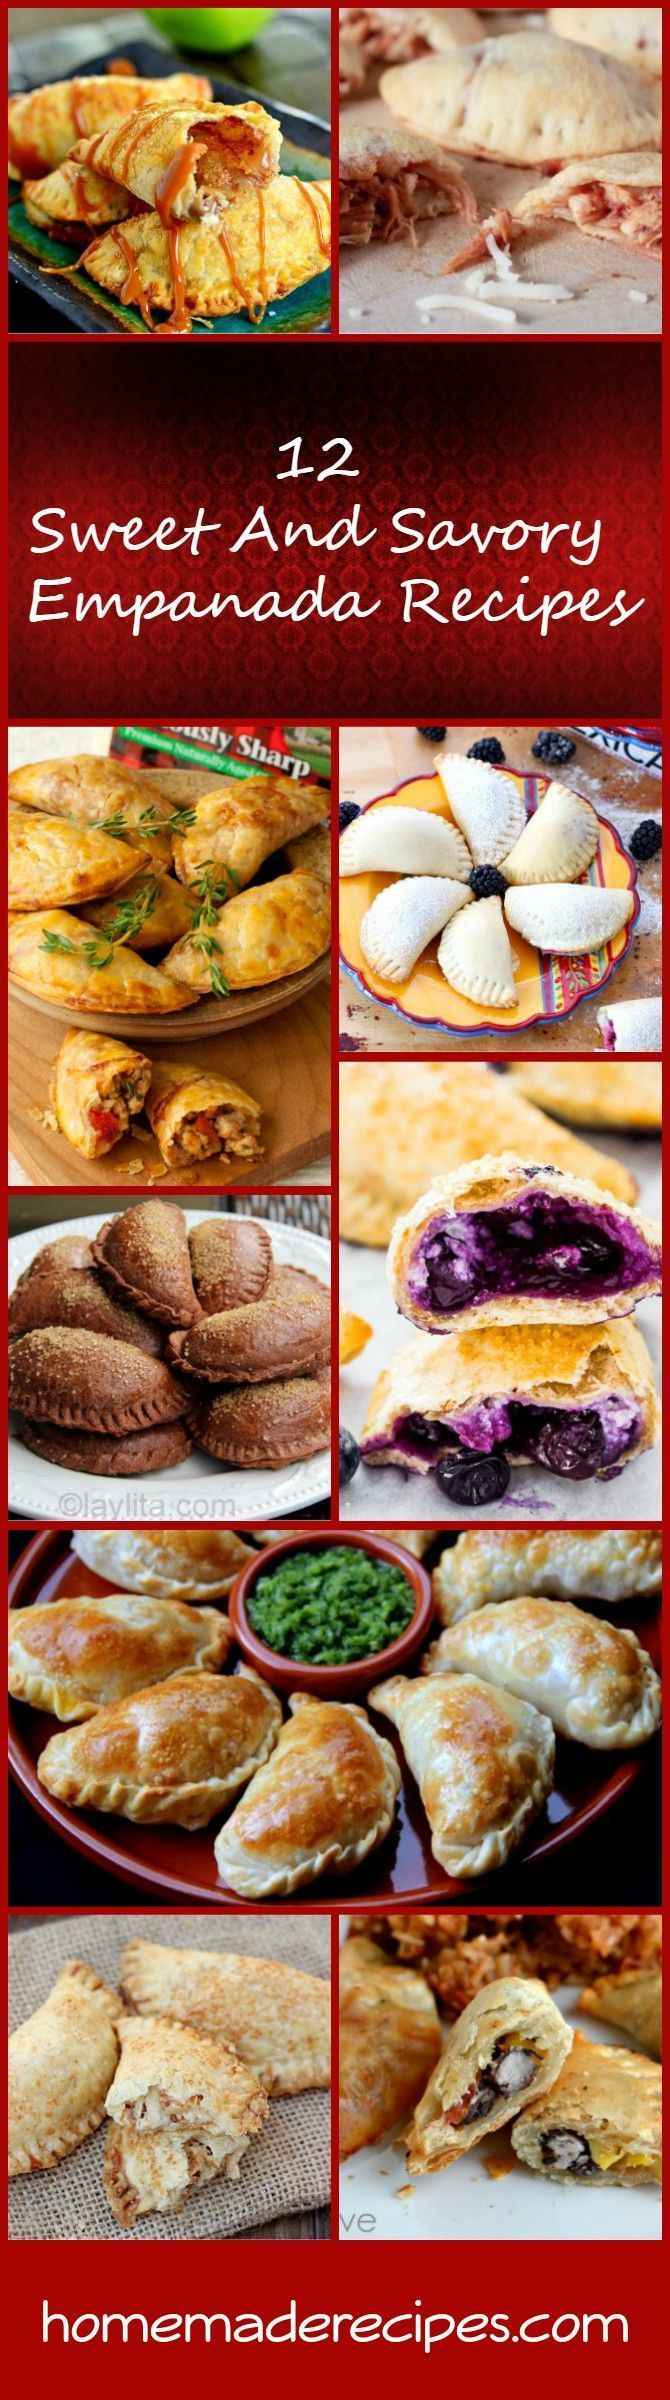 12 Sweet And Savory Empanada Recipes | How To Make Delicious And Savory Empanada From Scratch by Homemade Recipes at http://homemaderecipes.com